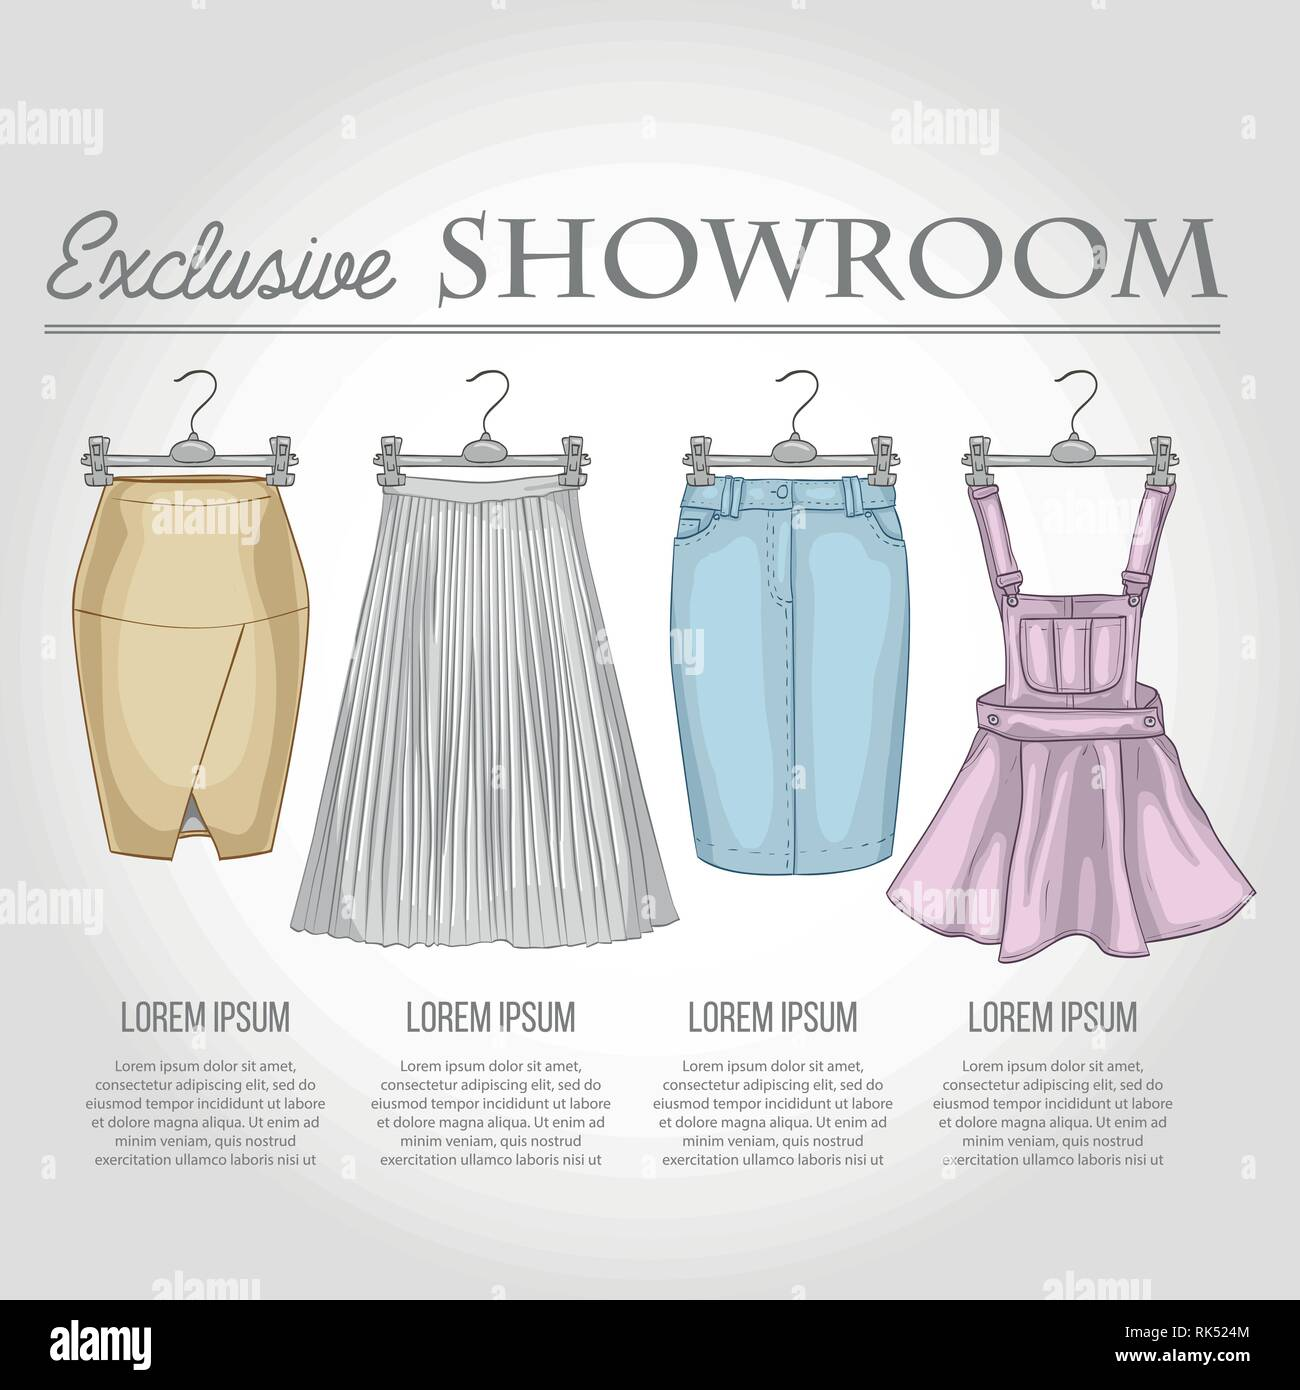 Color showroom set of woman casual skirts - Stock Vector